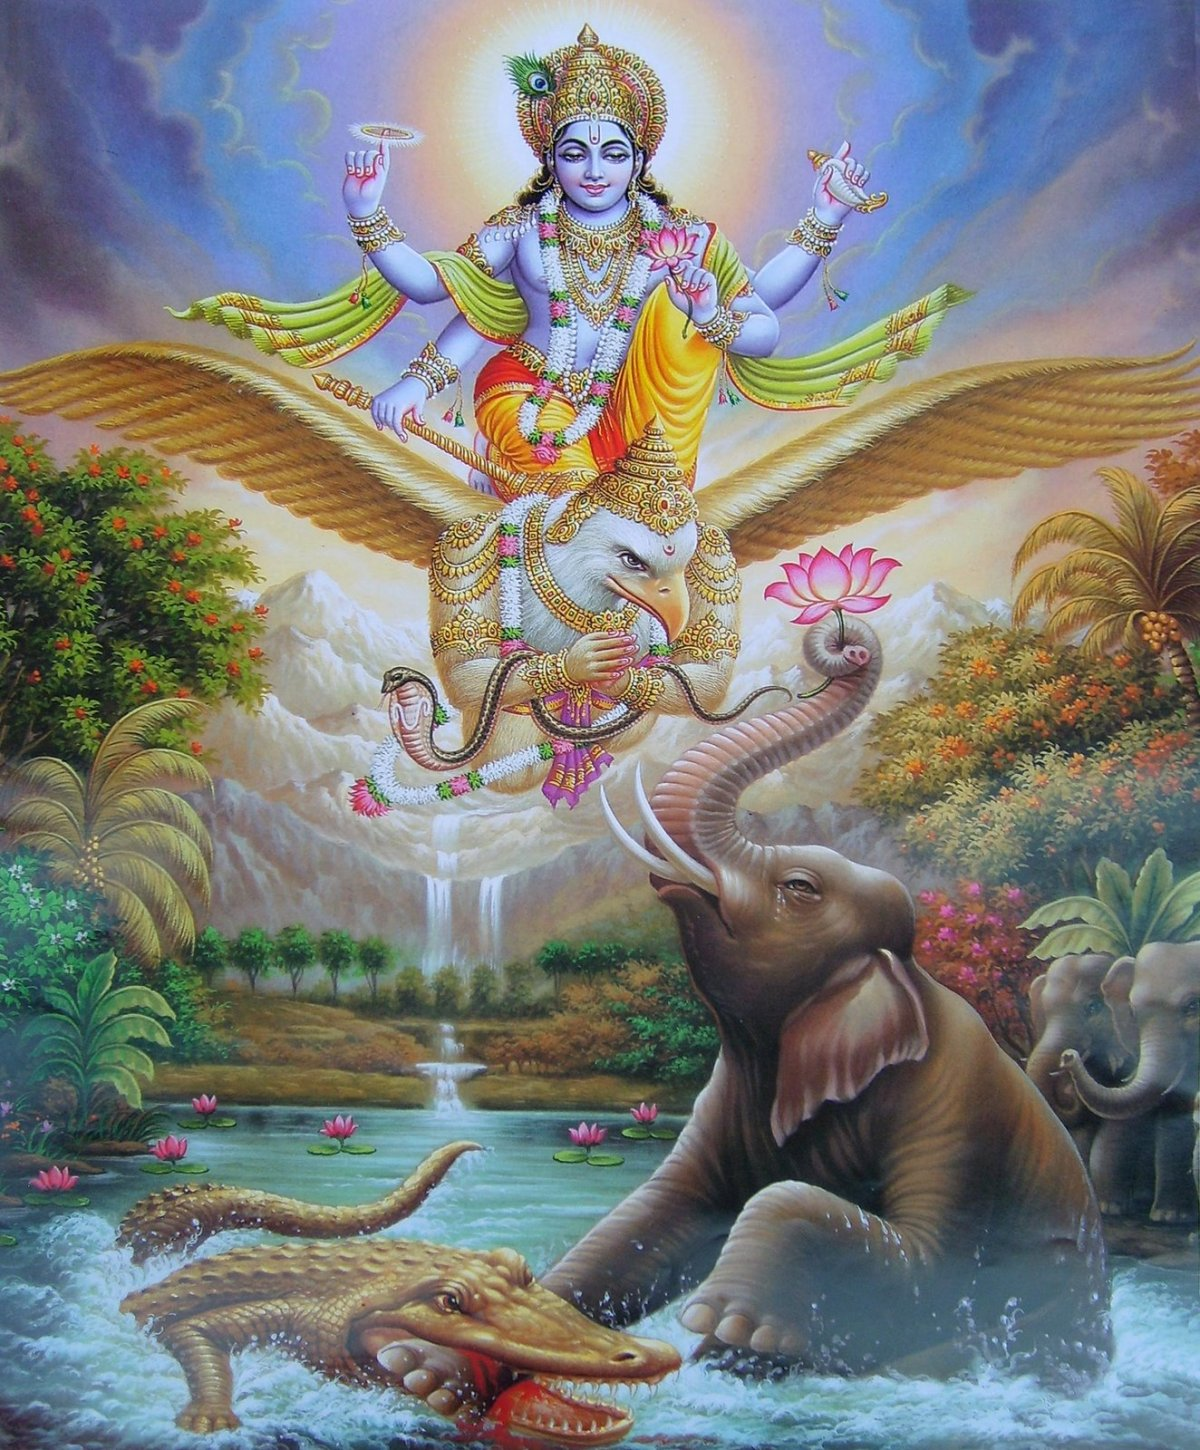 Gajendra is in a lake with a crocodile biting his leg. Vishnu is in the sky on Garuda, saving Gajendra